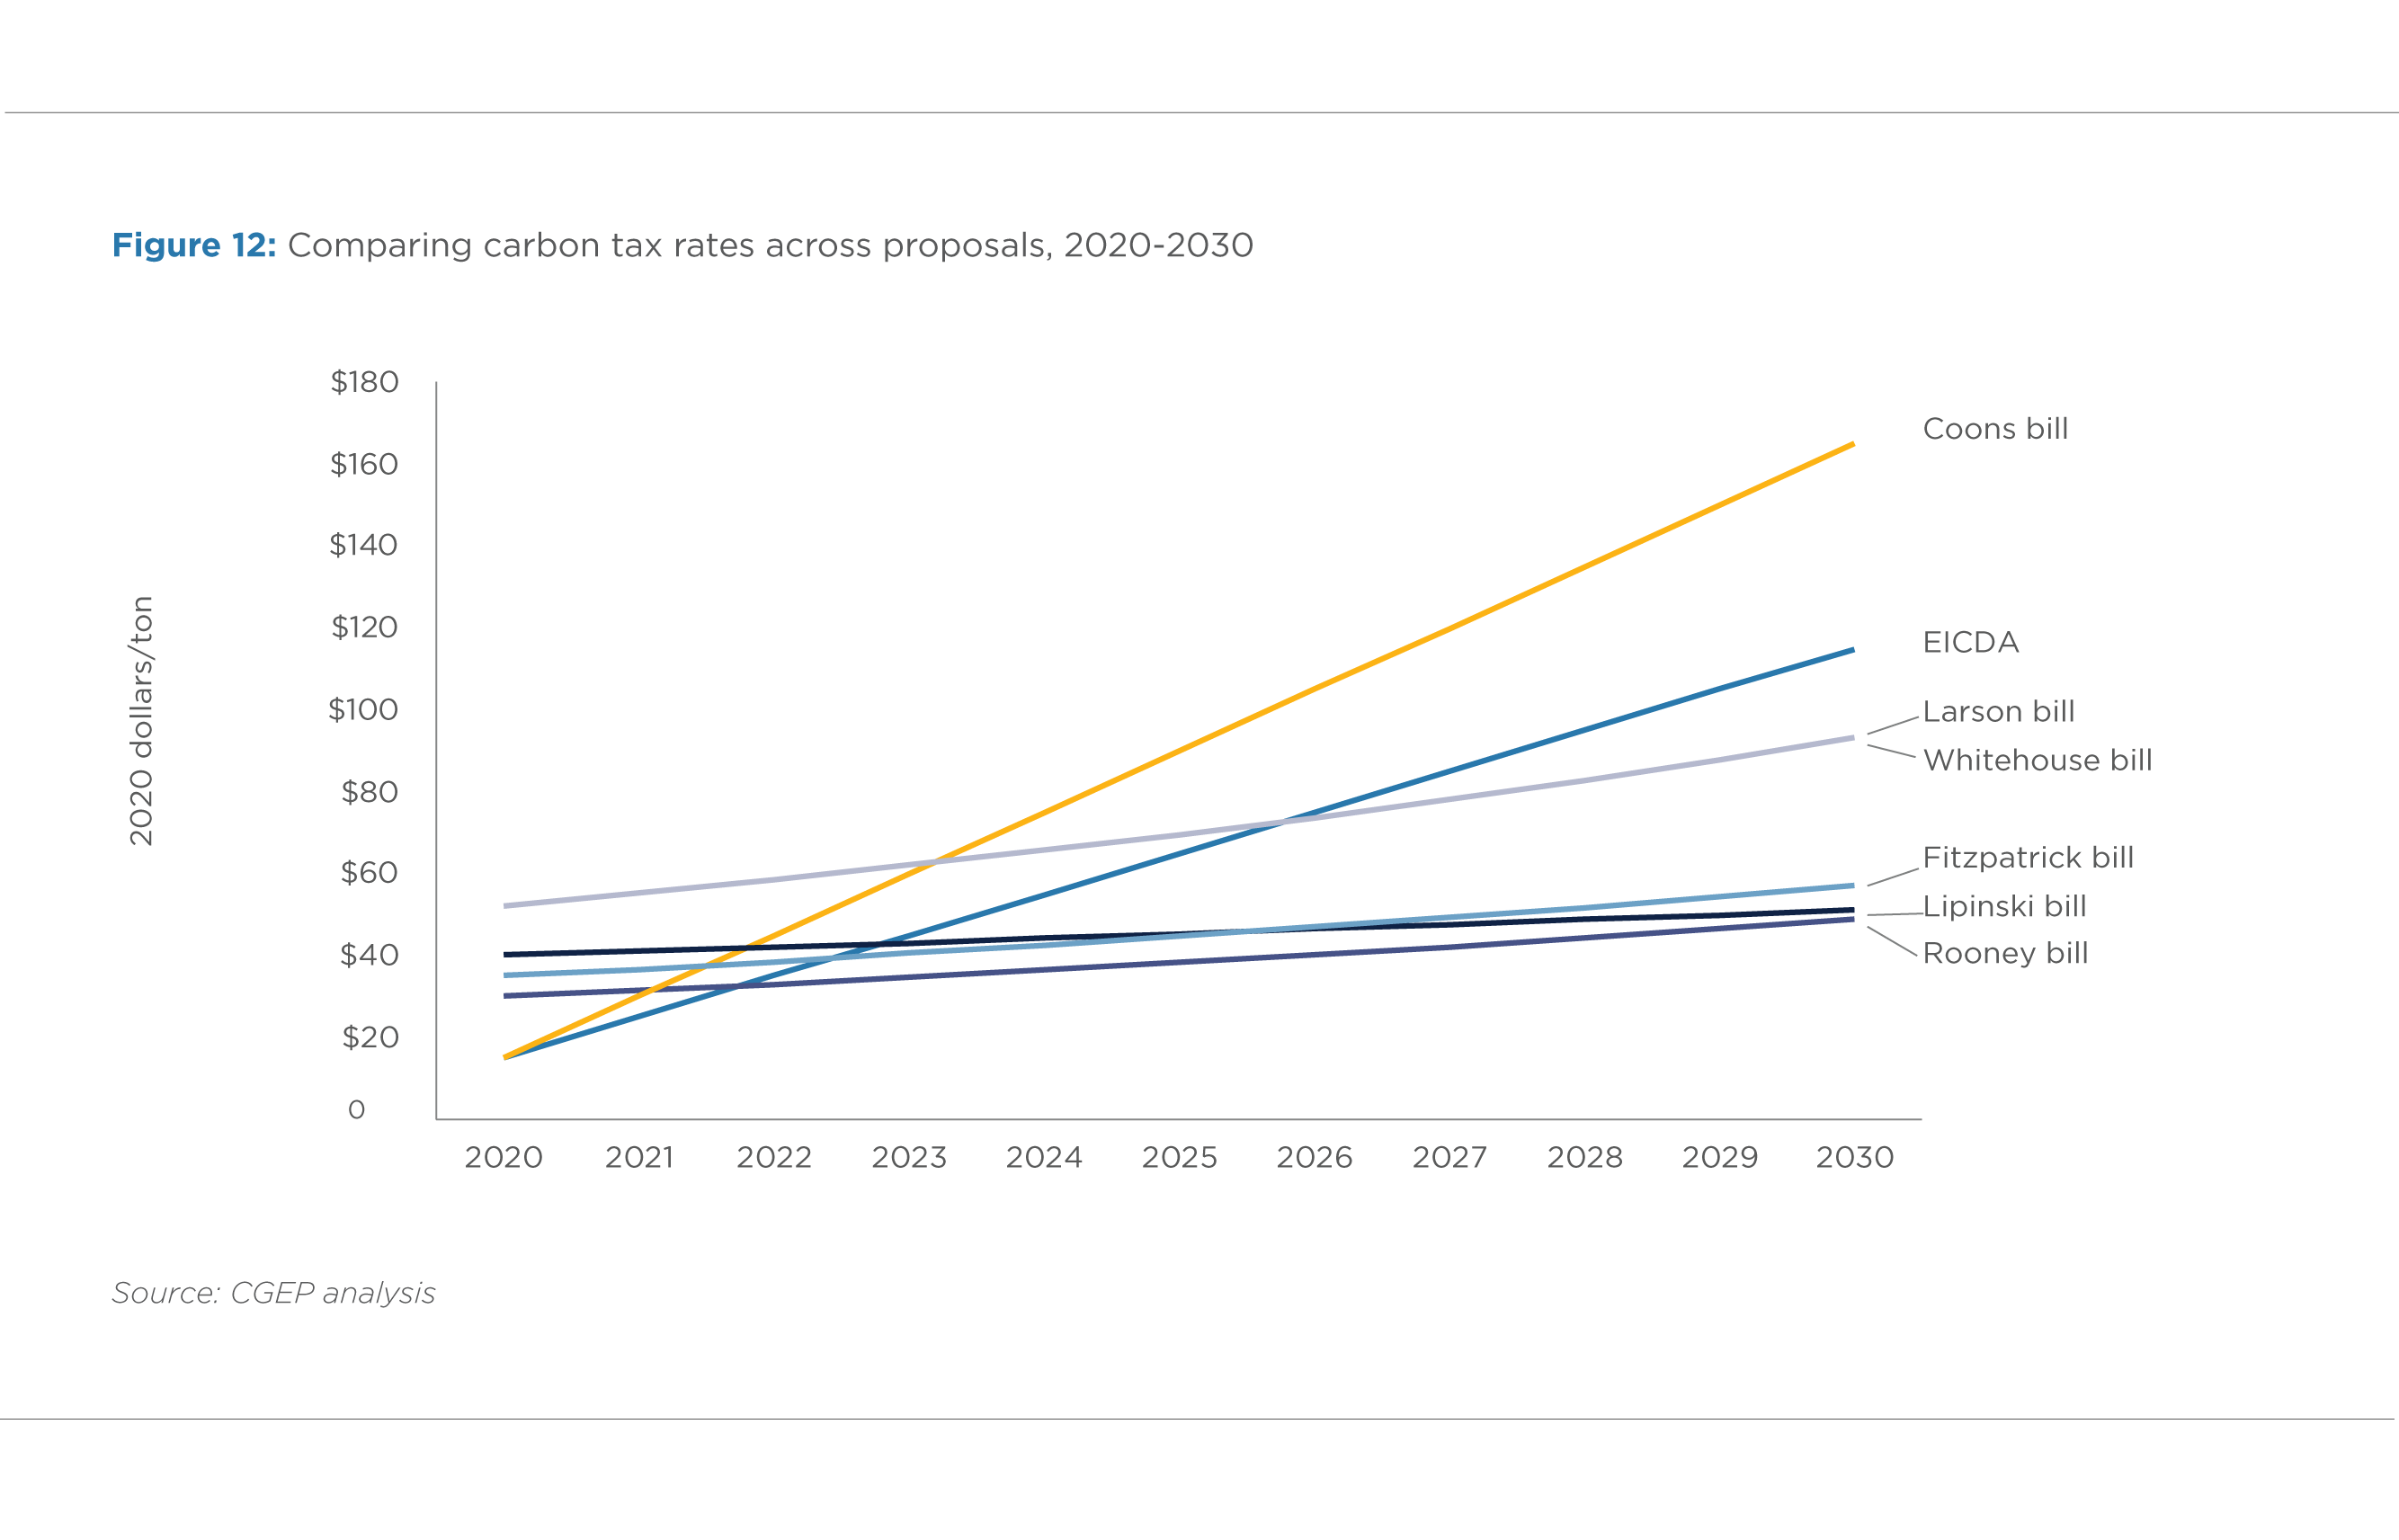 FIGURE 12. COMPARING CARBON TAX RATES ACROSS PROPOSALS, 2020-2030